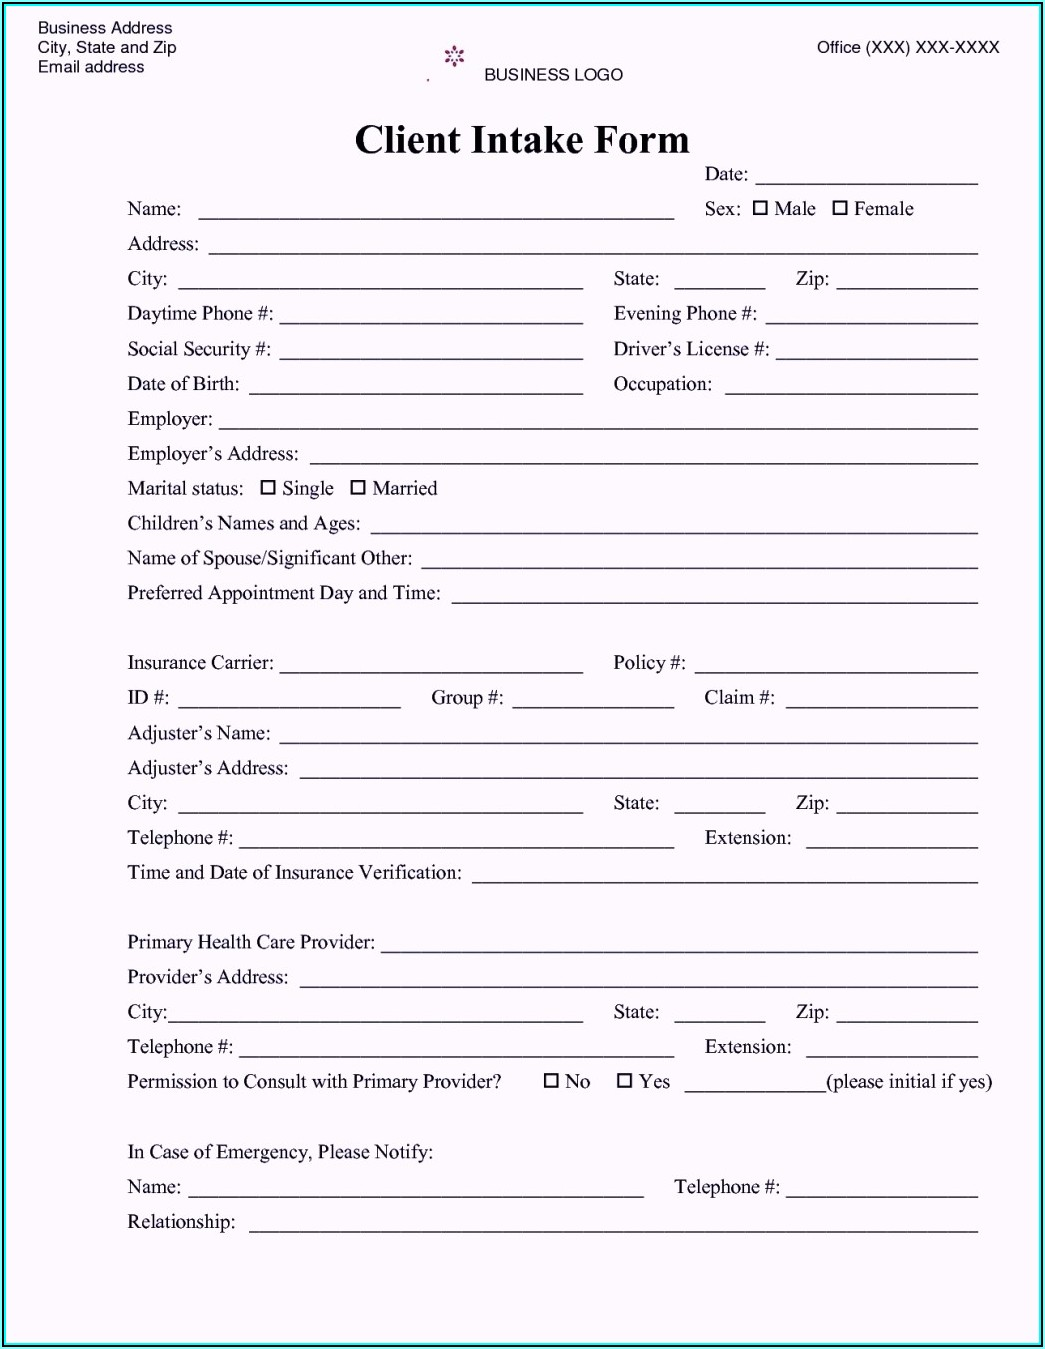 Sample Legal Client Intake Form